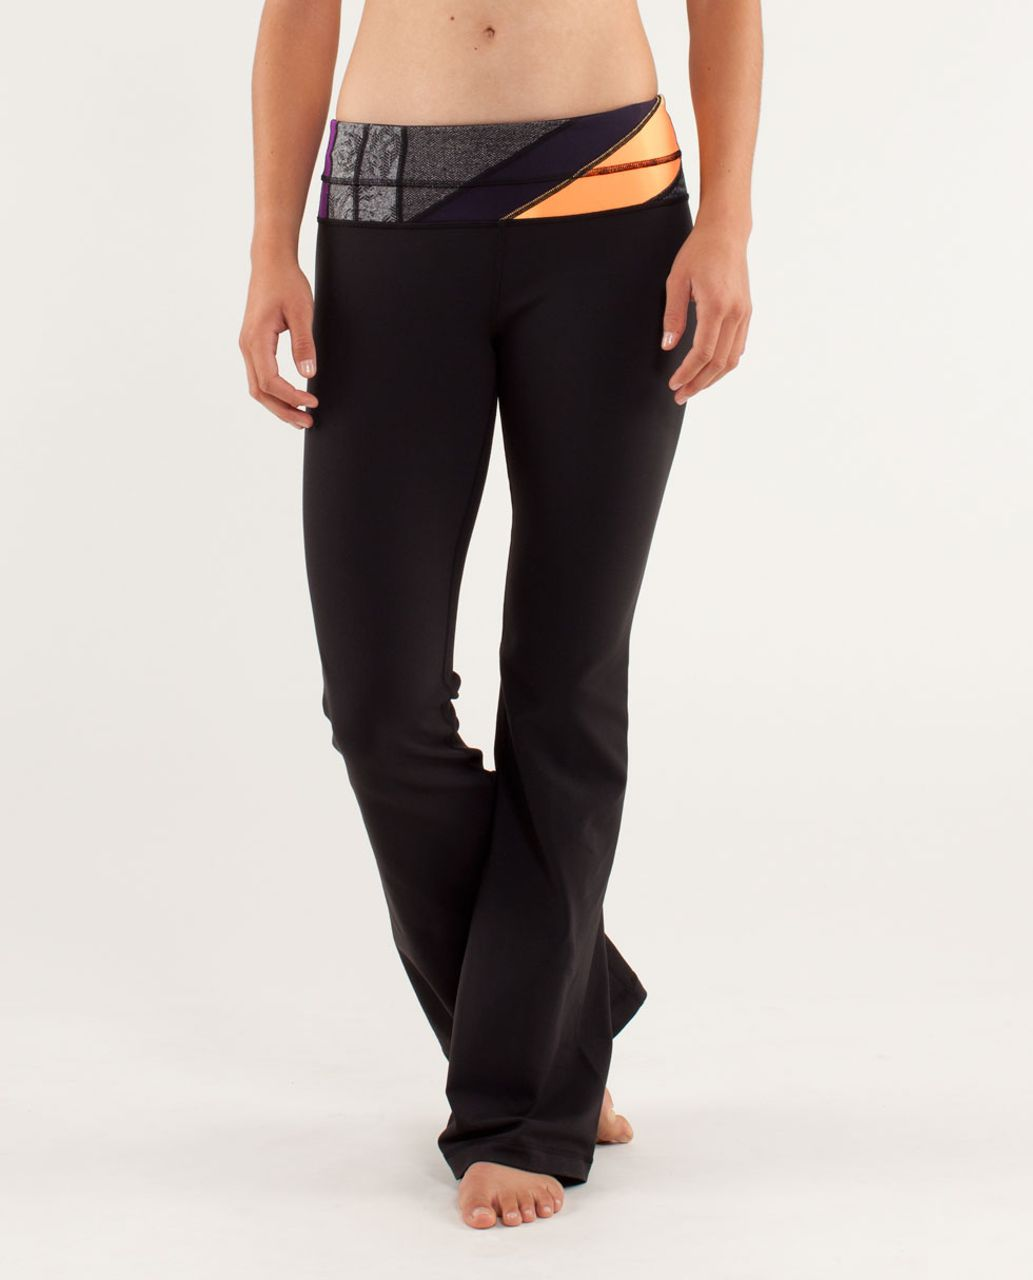 Lululemon Groove Pant *Slim (Tall) - Black /  Quilting Winter 3 /  Quilting Winter 3